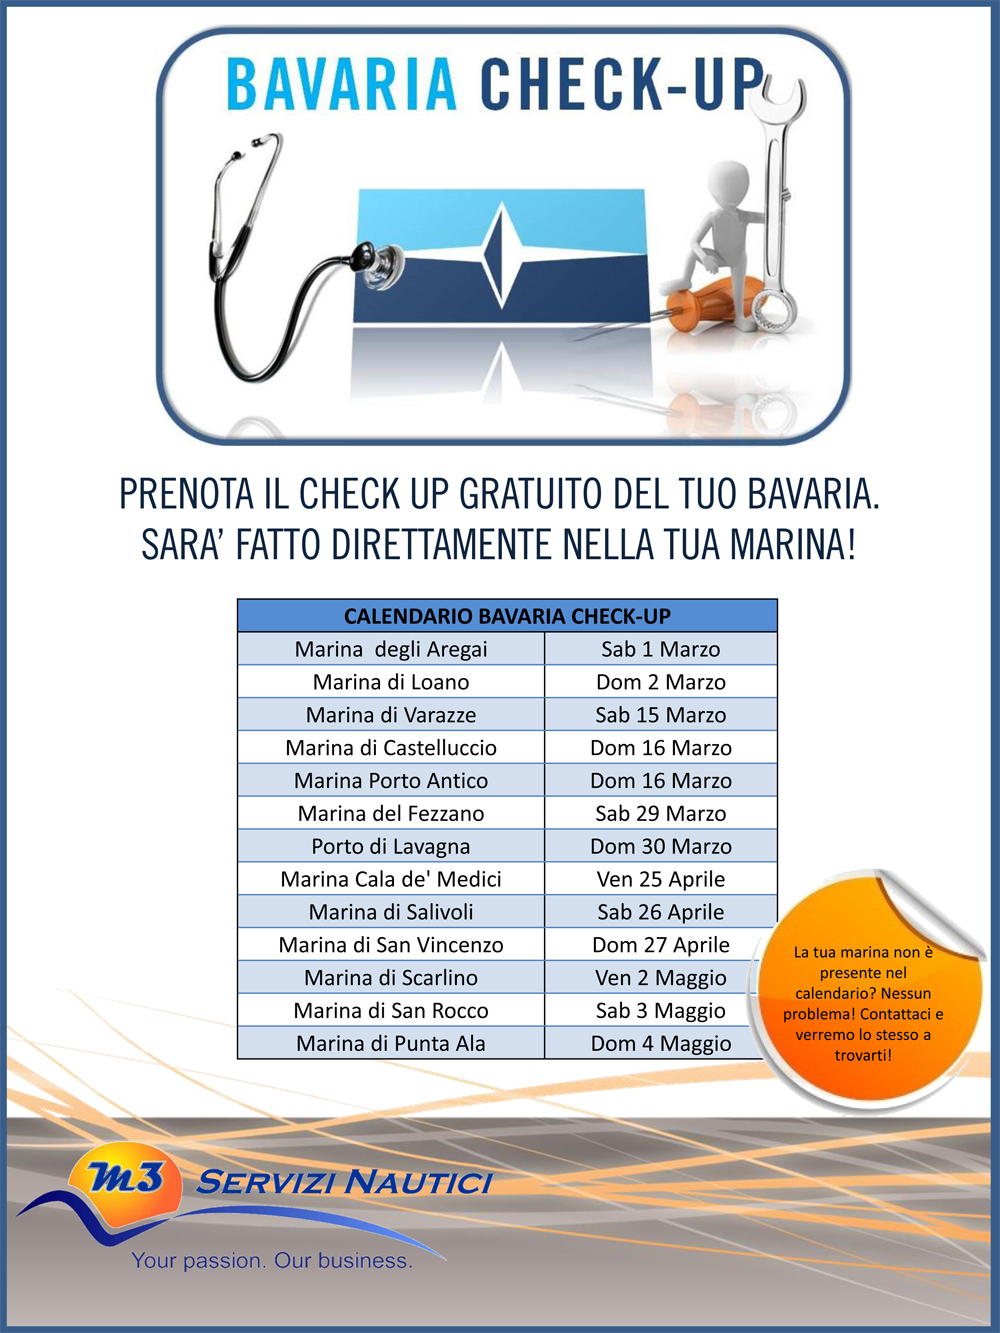 bavaria-check-up